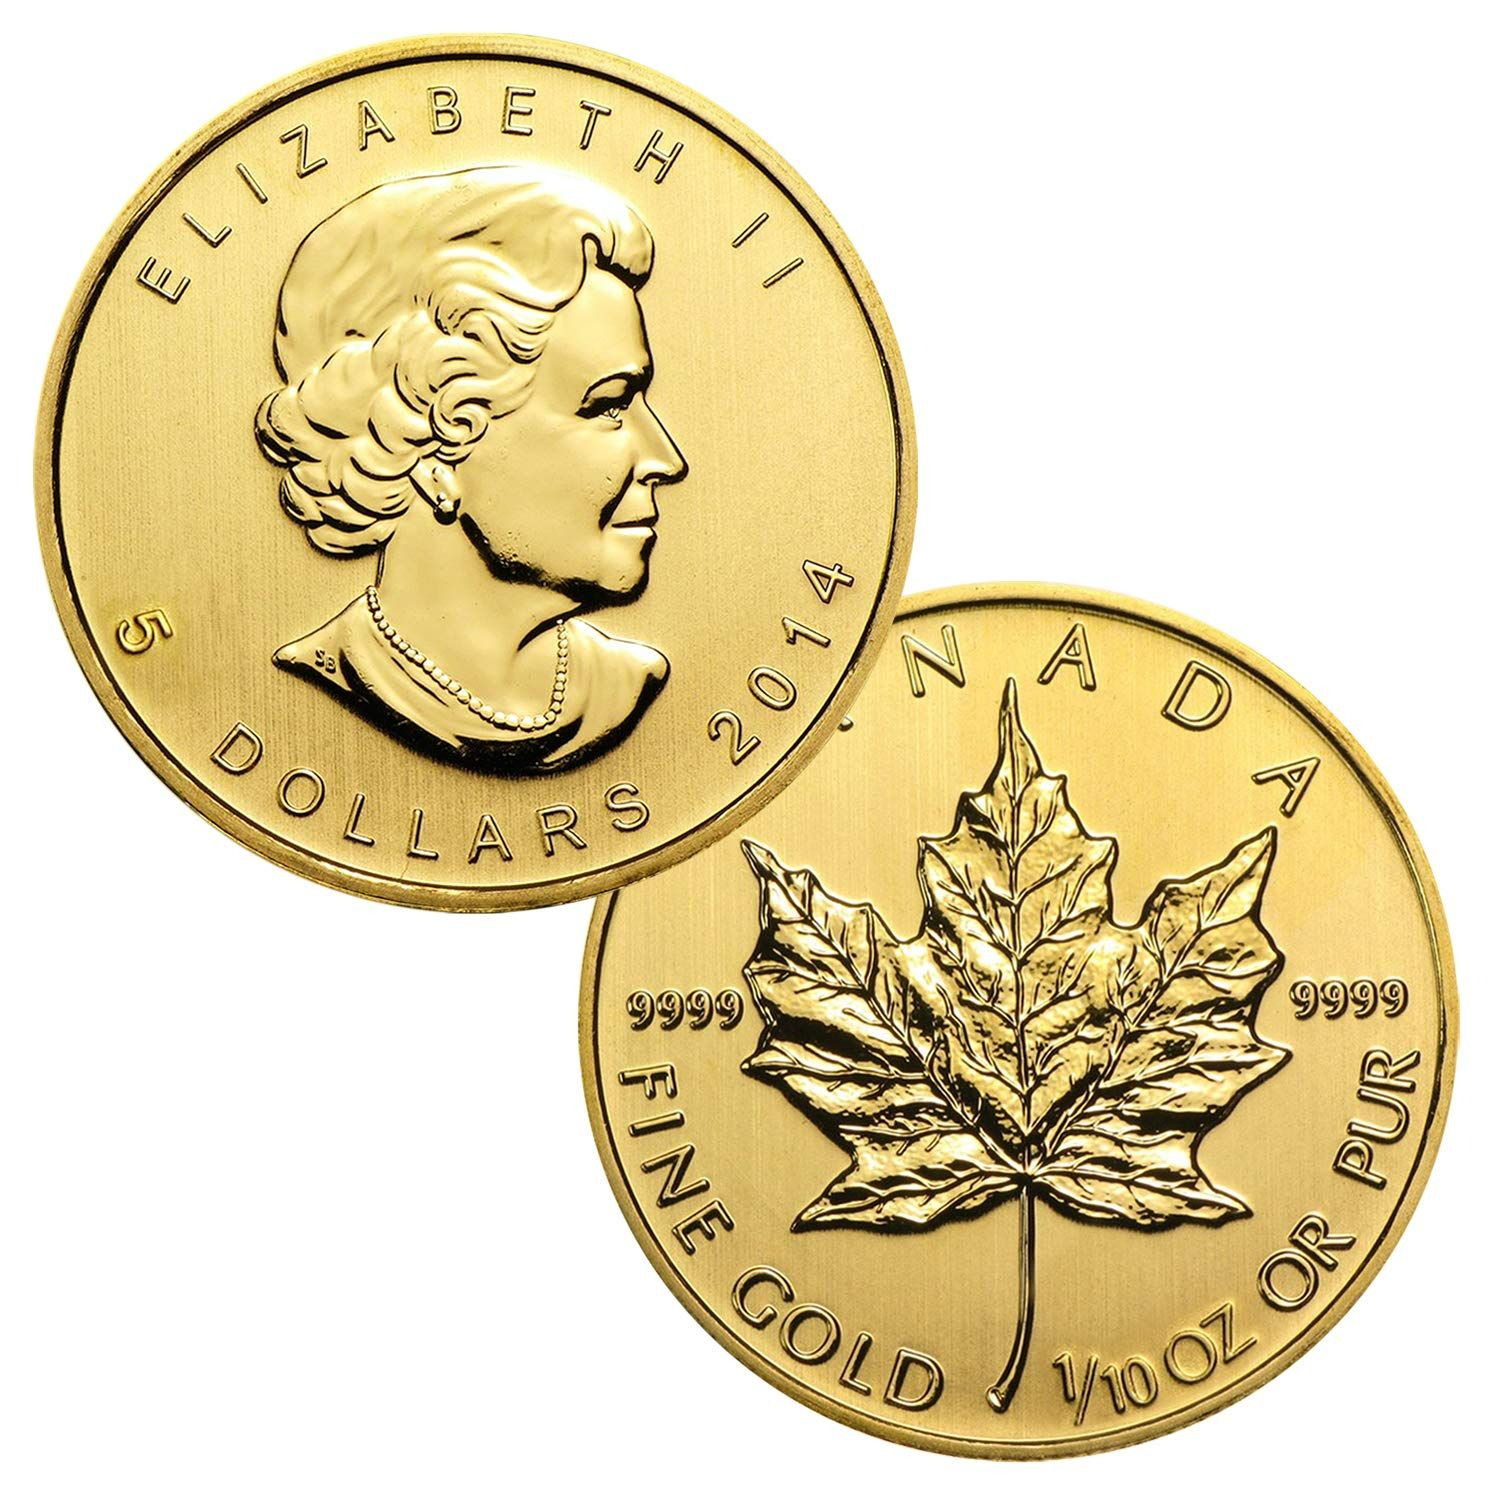 1 10 Ounce Canadian Gold Maple Leaf 5 Brilliant Uncirculated Gold Bullion Coins Coins Coin Buyers